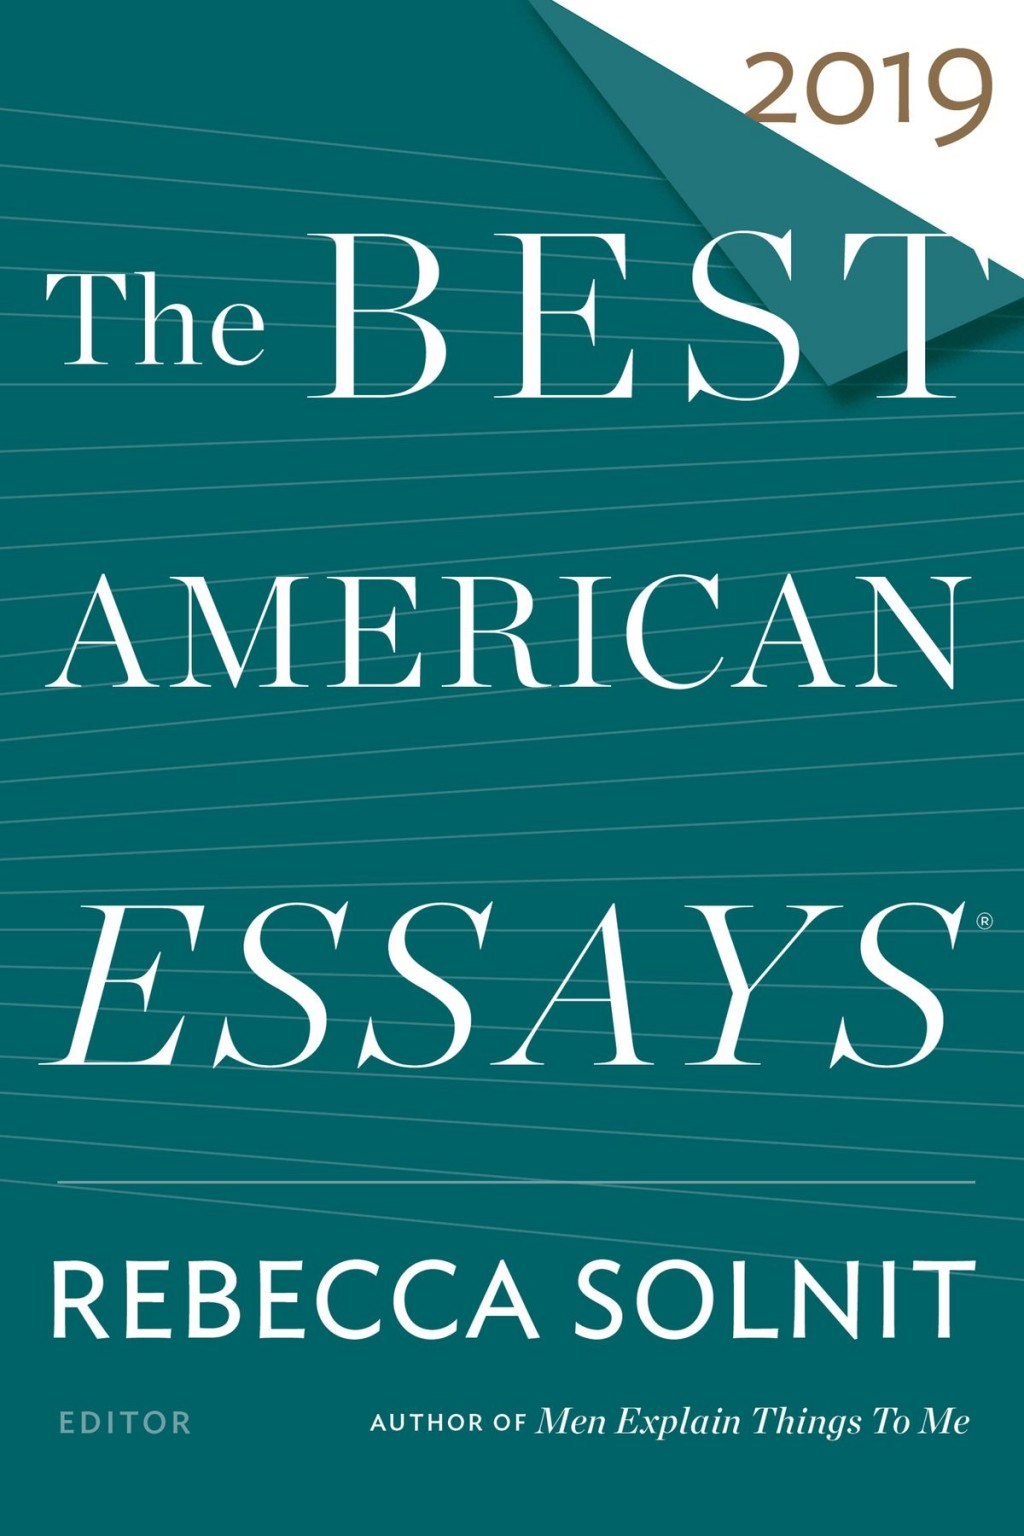 007 The Best American Essays Essay Wonderful 2018 List Pdf Download 2017 Free Large